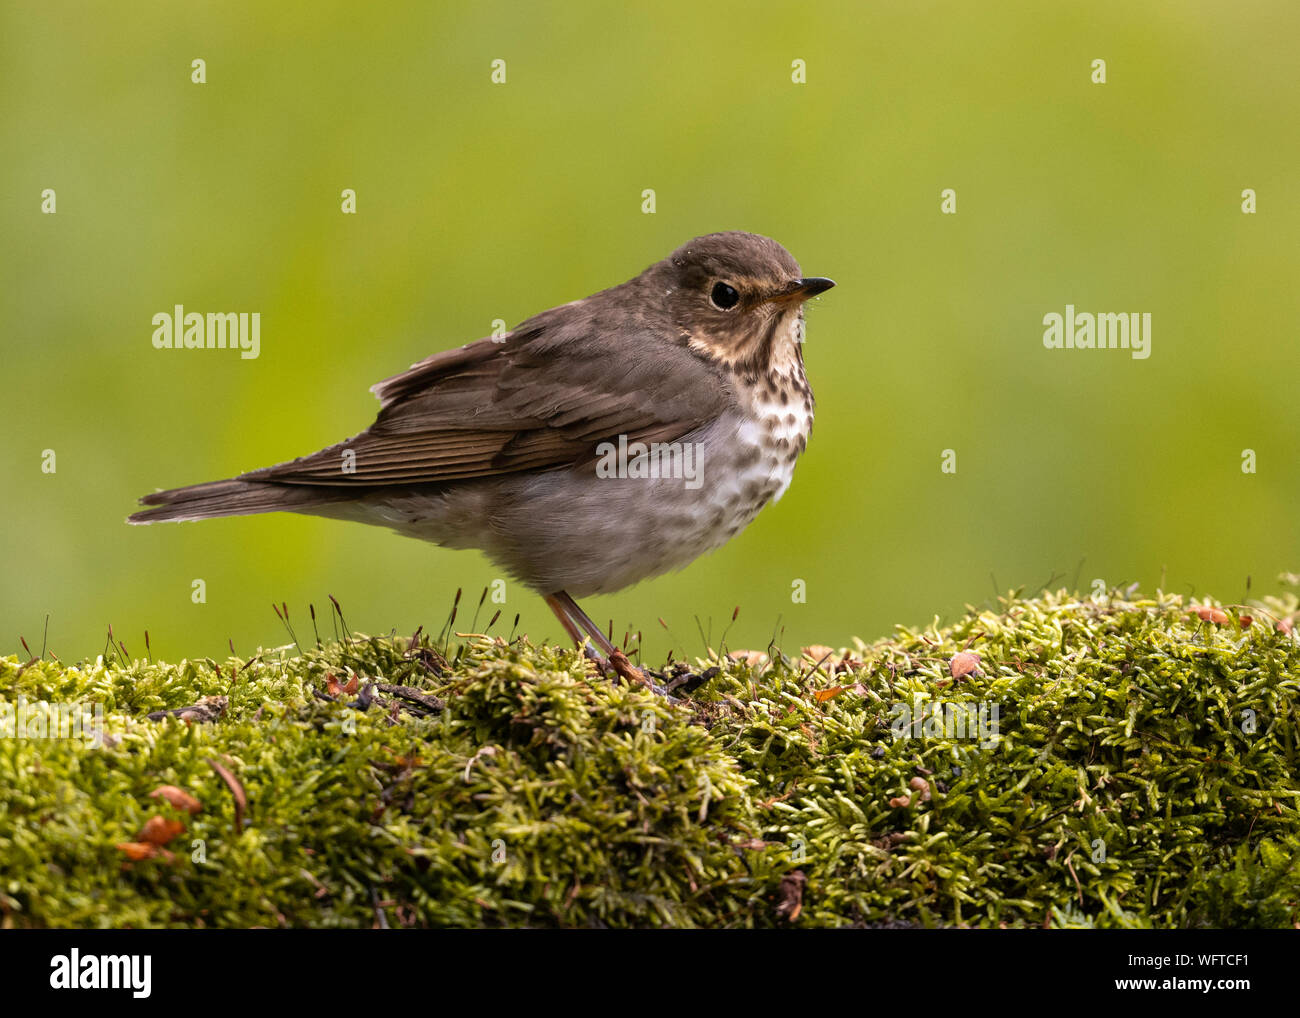 Swainson' Thrush at water drip during spring migration in Galveston Texas Stock Photo